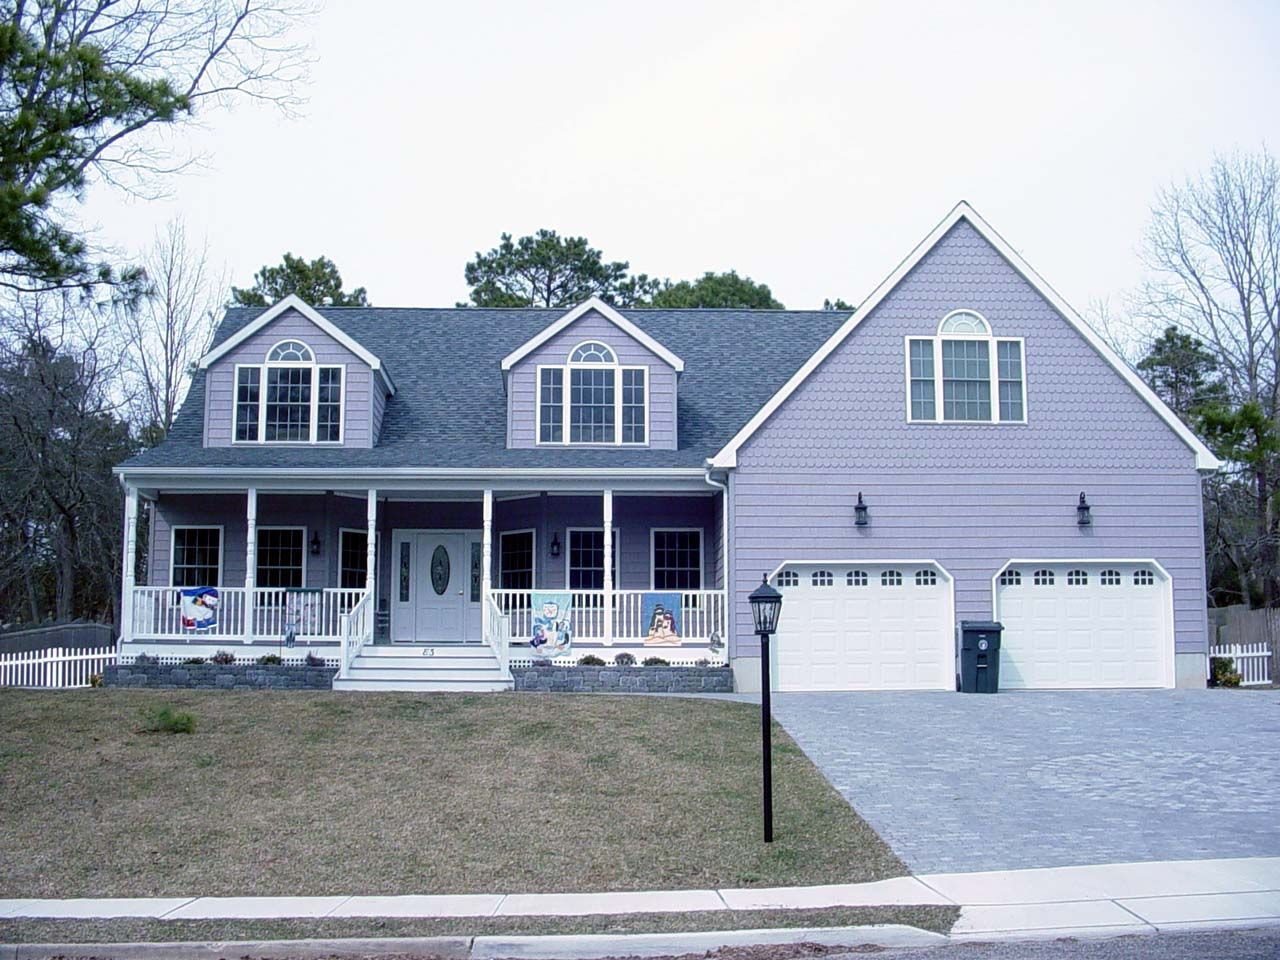 Cape cod style home with farmers porch two car garage and for Garage with dormers